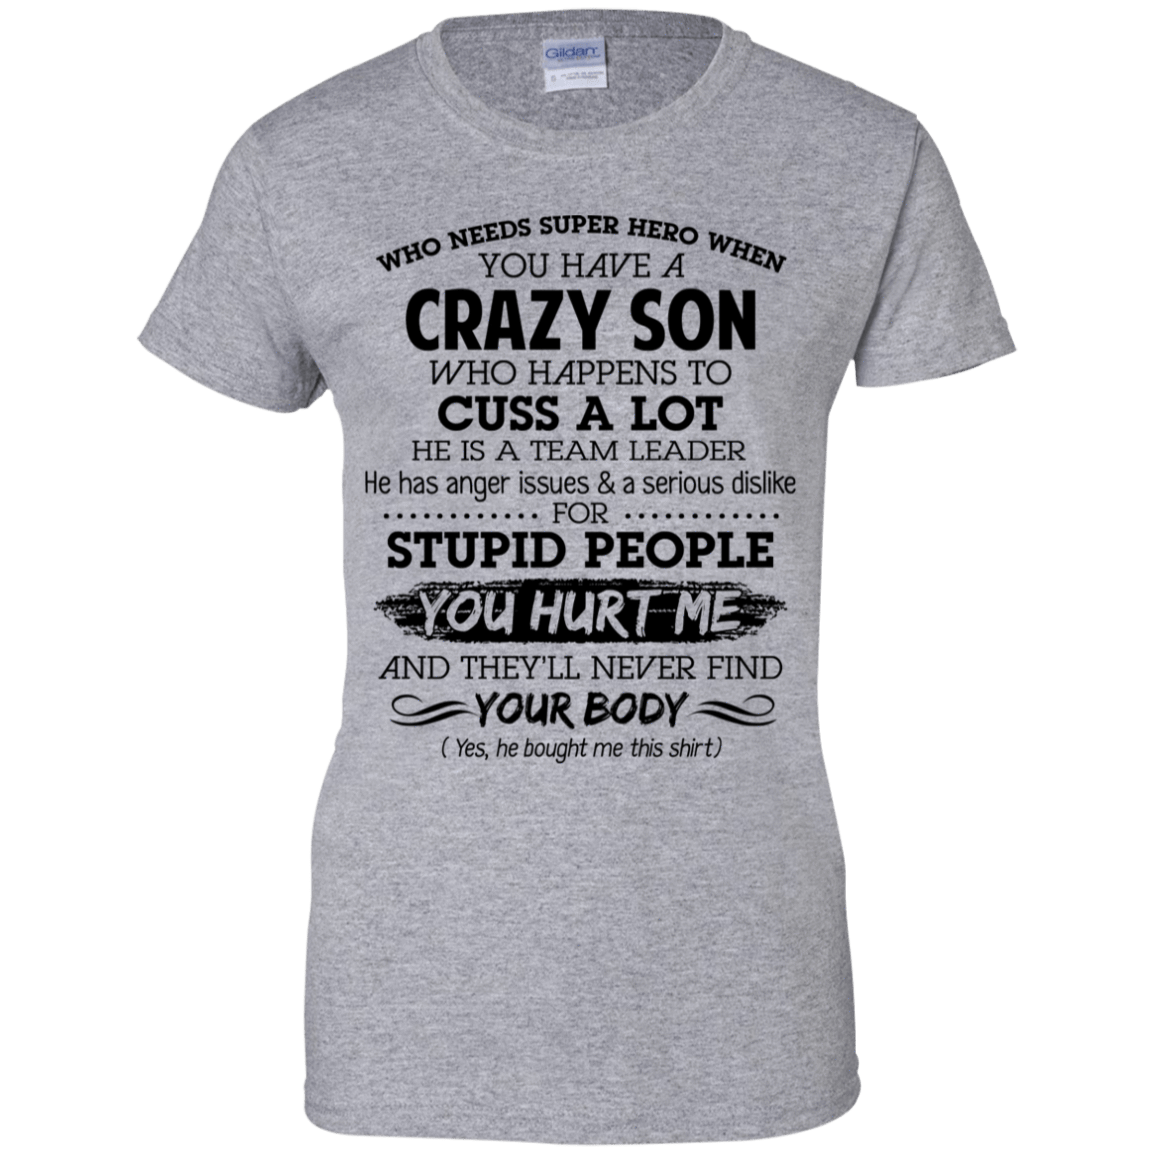 Have Crazy Son He Is A Team Leader Mother's Day Gift 939-9265-73619427-44821 - Tee Ript